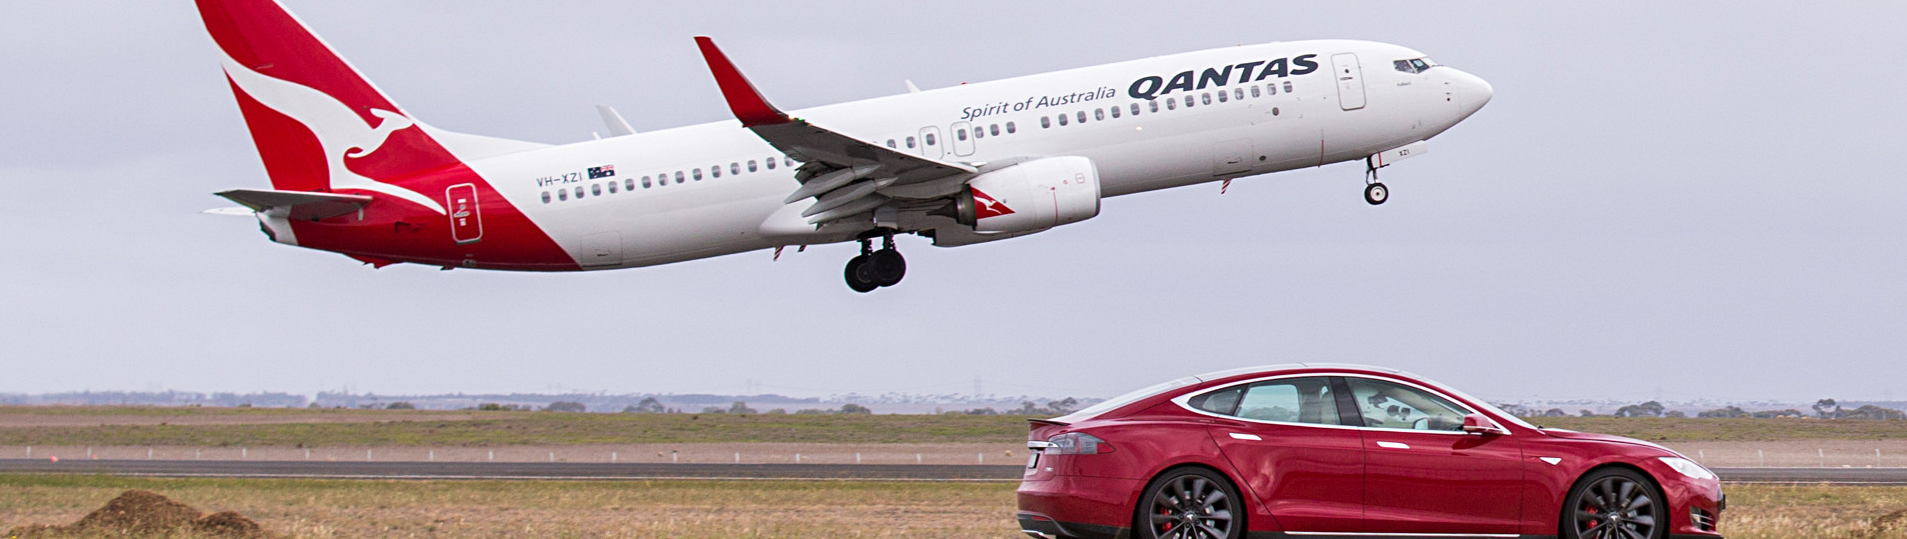 Just when you think that you have seen it all. Tesla's performance flagship vehicle, the Model S P90D, was recently matched up against a Boeing 737 to create a very unlikely drag race. Being that we have already watched the Model S take on some of the fastest and most luxurious supercars on the planet, it only seemed natural for the Model to seek out less traditional competition. Australian airliner Qantas and Telsa are working together to create cleaner emissions and improve technical performance. This less-than-likely drag race was recently filmed in Melbourne, Australia as a promotional video to highlight the technical collaboration between the two companies.